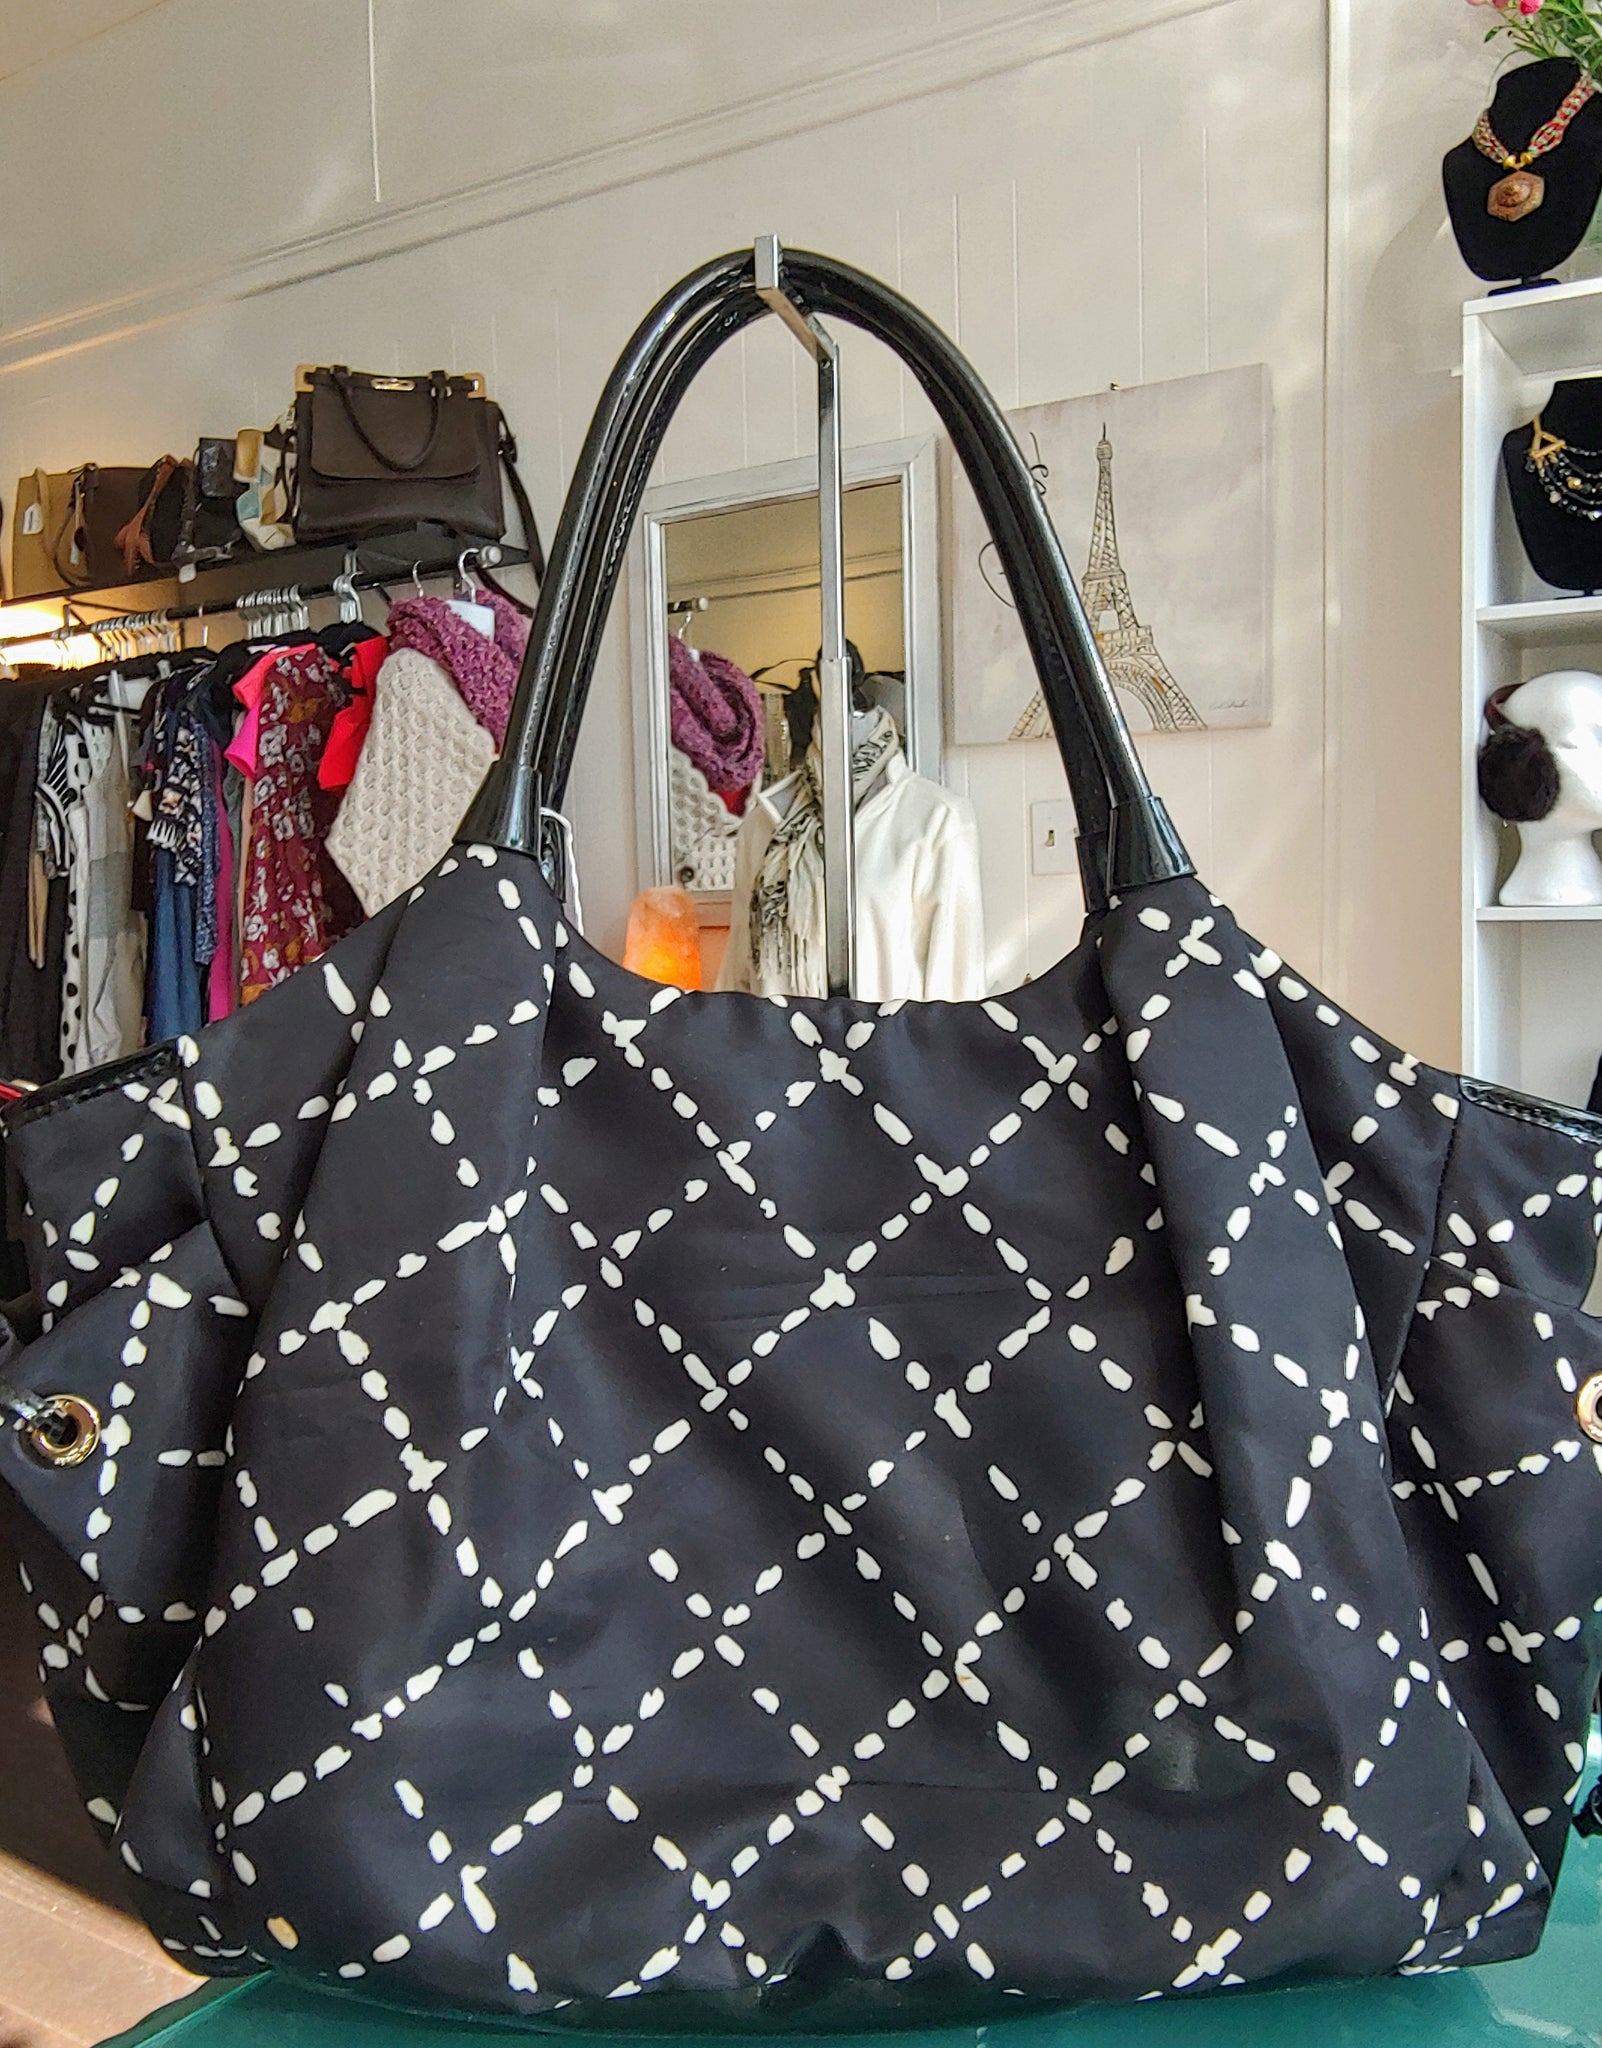 Black & White Print Kate Spade Shoulder Bag